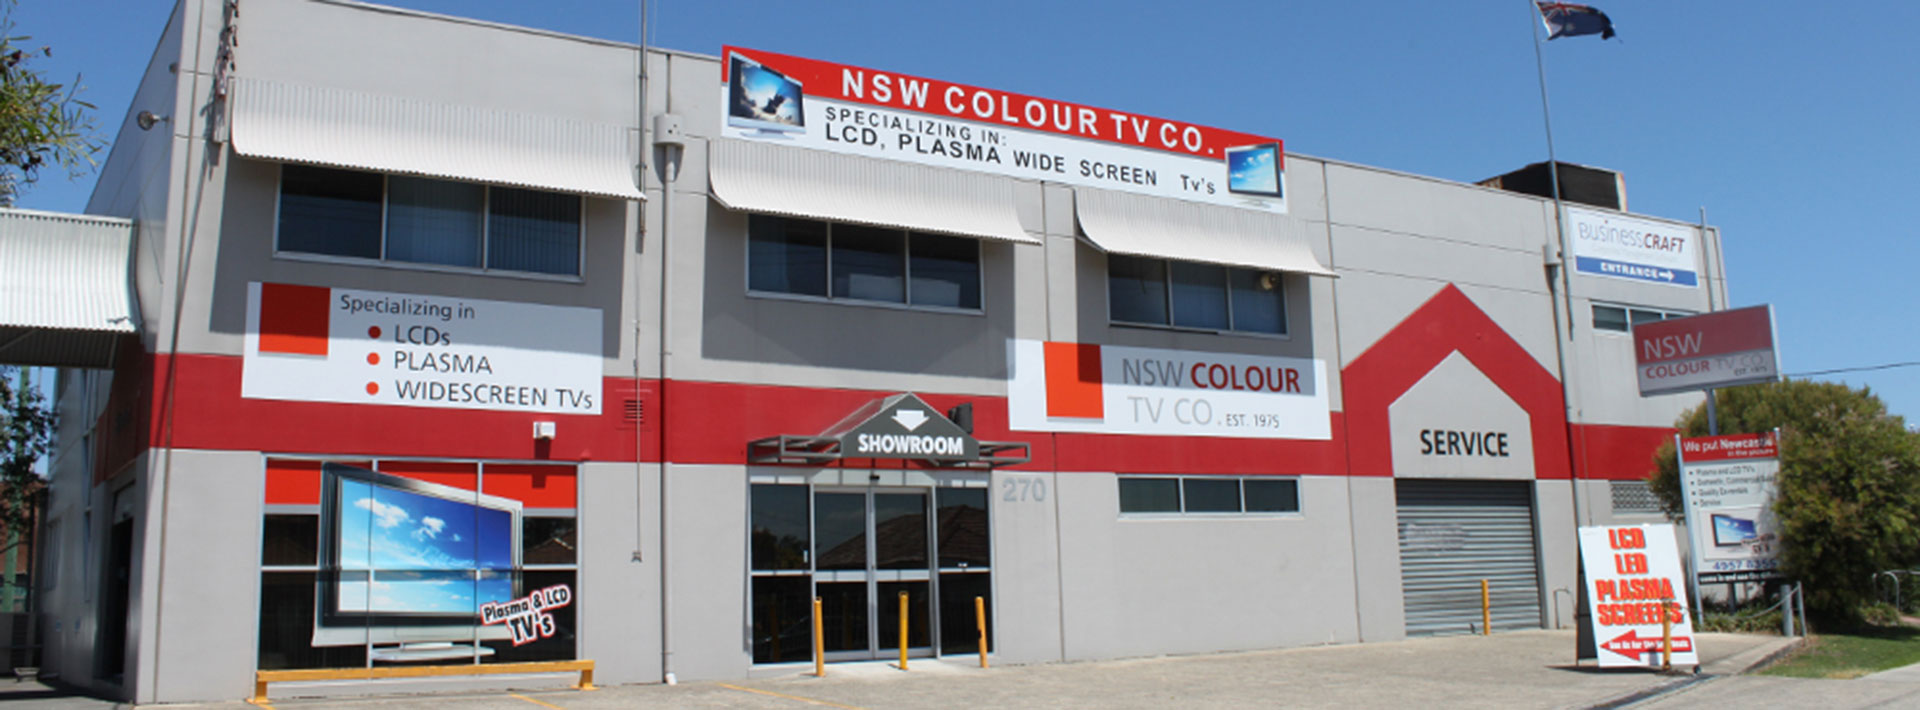 Australian Colour TV Co